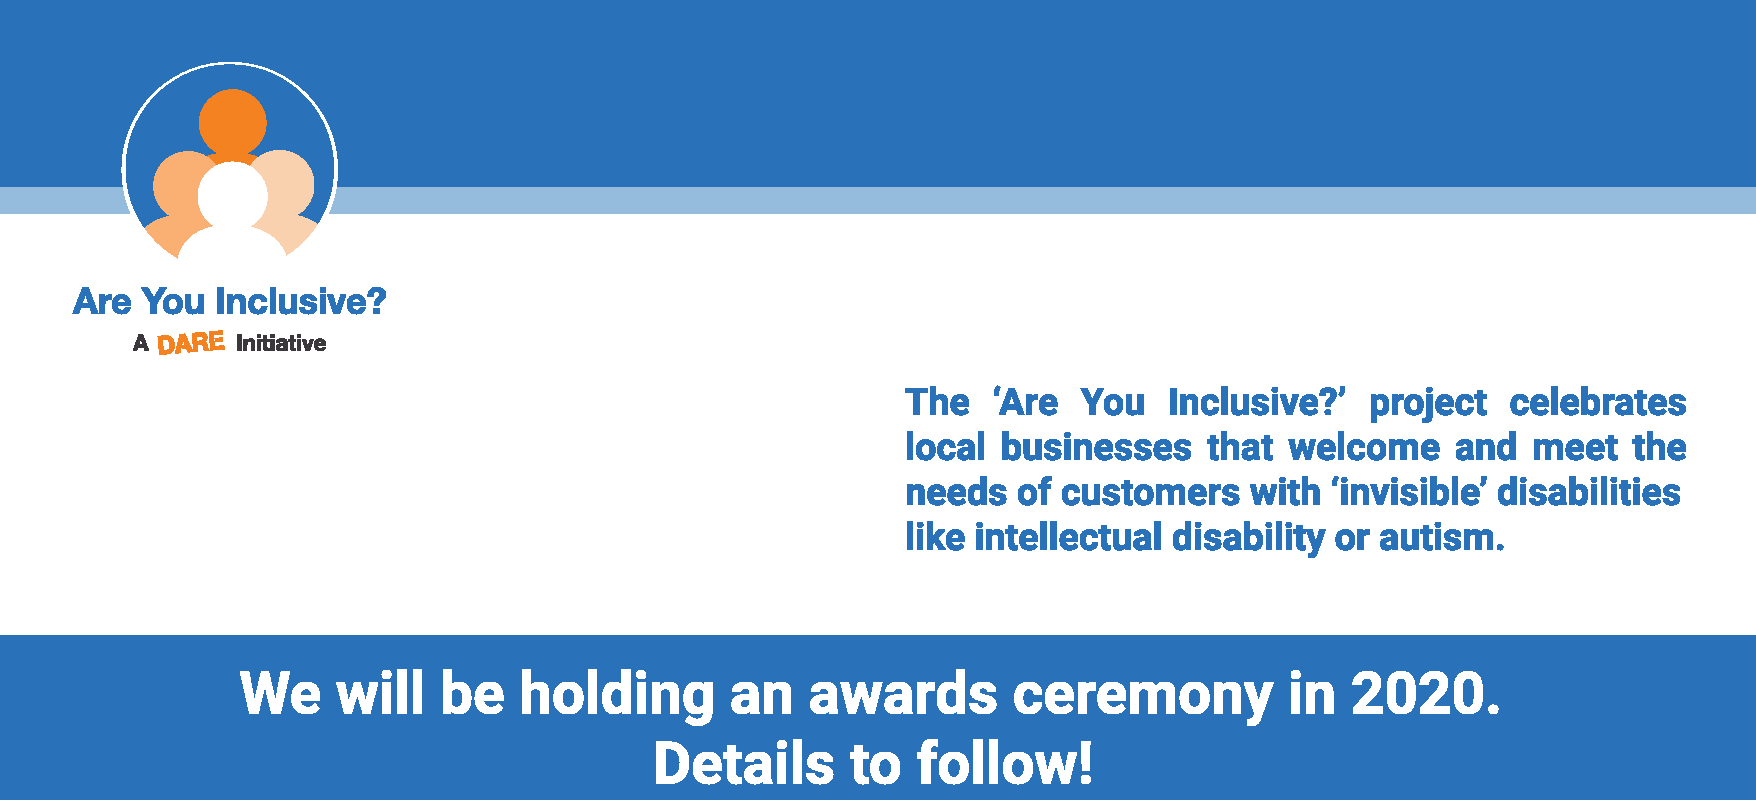 The above images show the awards program flyer. For a text-only version, download the  Word document version .